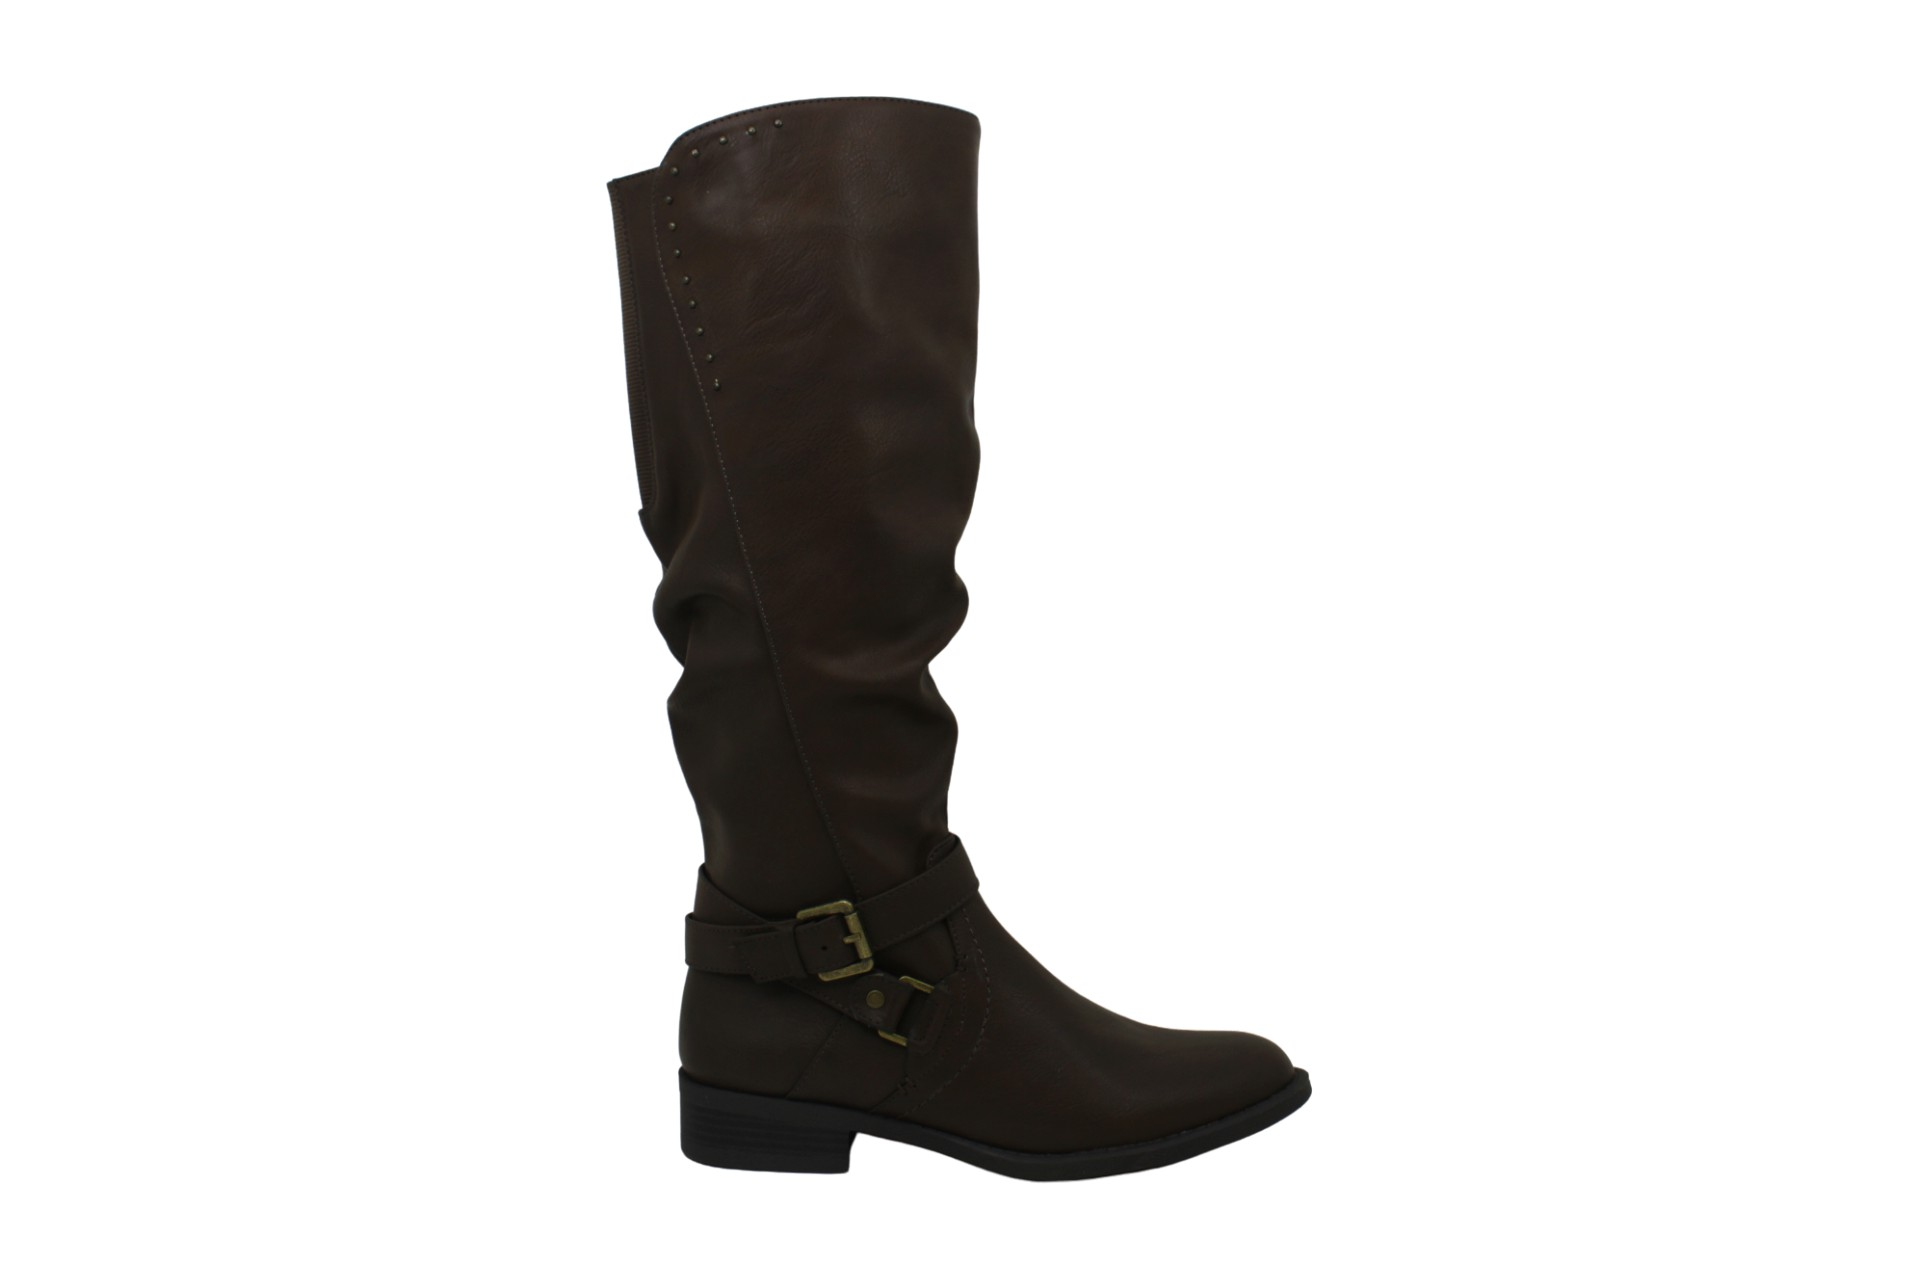 WHITE MOUNTAIN Shoes Liona Women's Wide Calf Boot,, Brown, Size 5.5 US / 3.5 UK